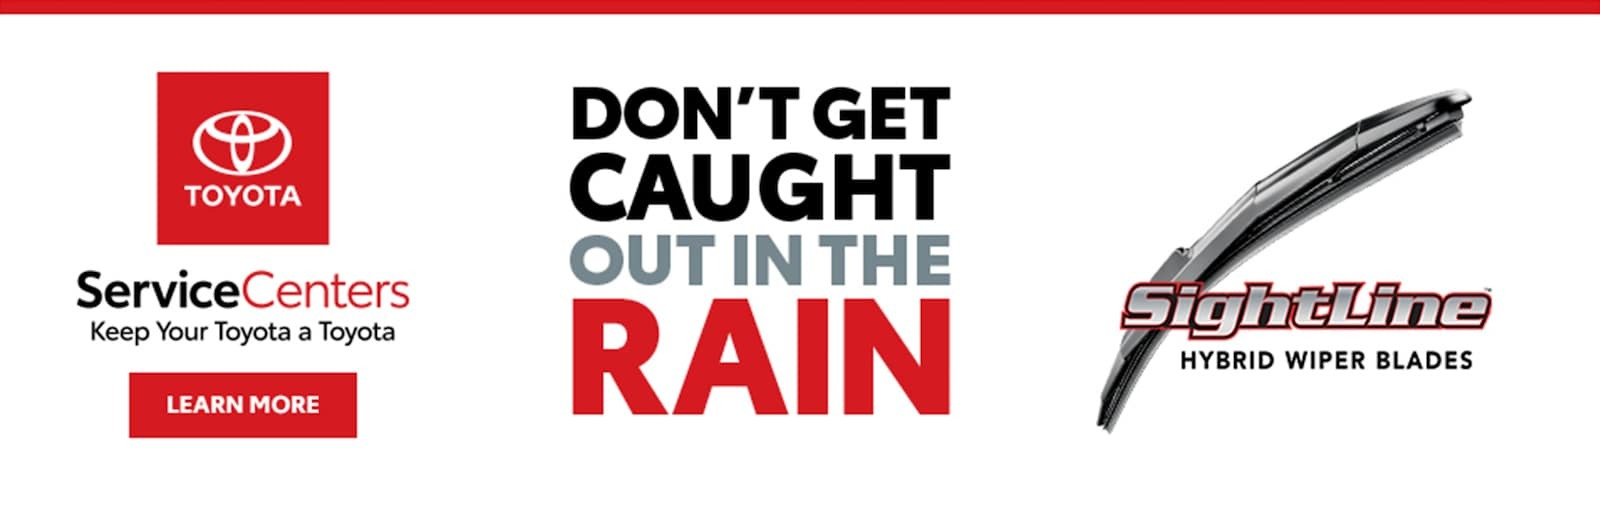 DONT GET CAUGHT IN THE RAIN